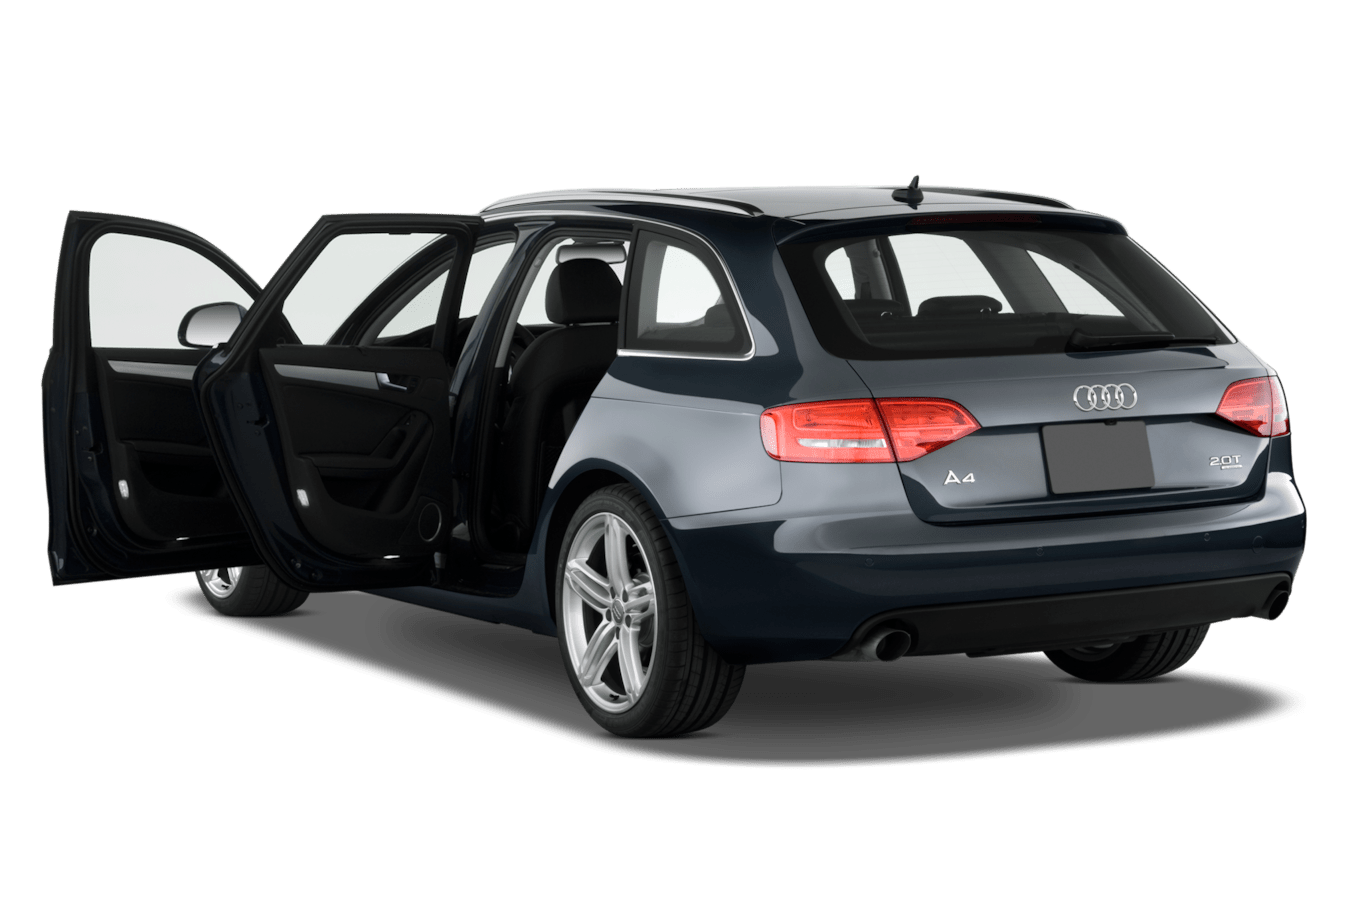 hight resolution of 2009 audi a4 2 0t engine diagram wiring diagram 1998 audi a4 avant review 1998 audi